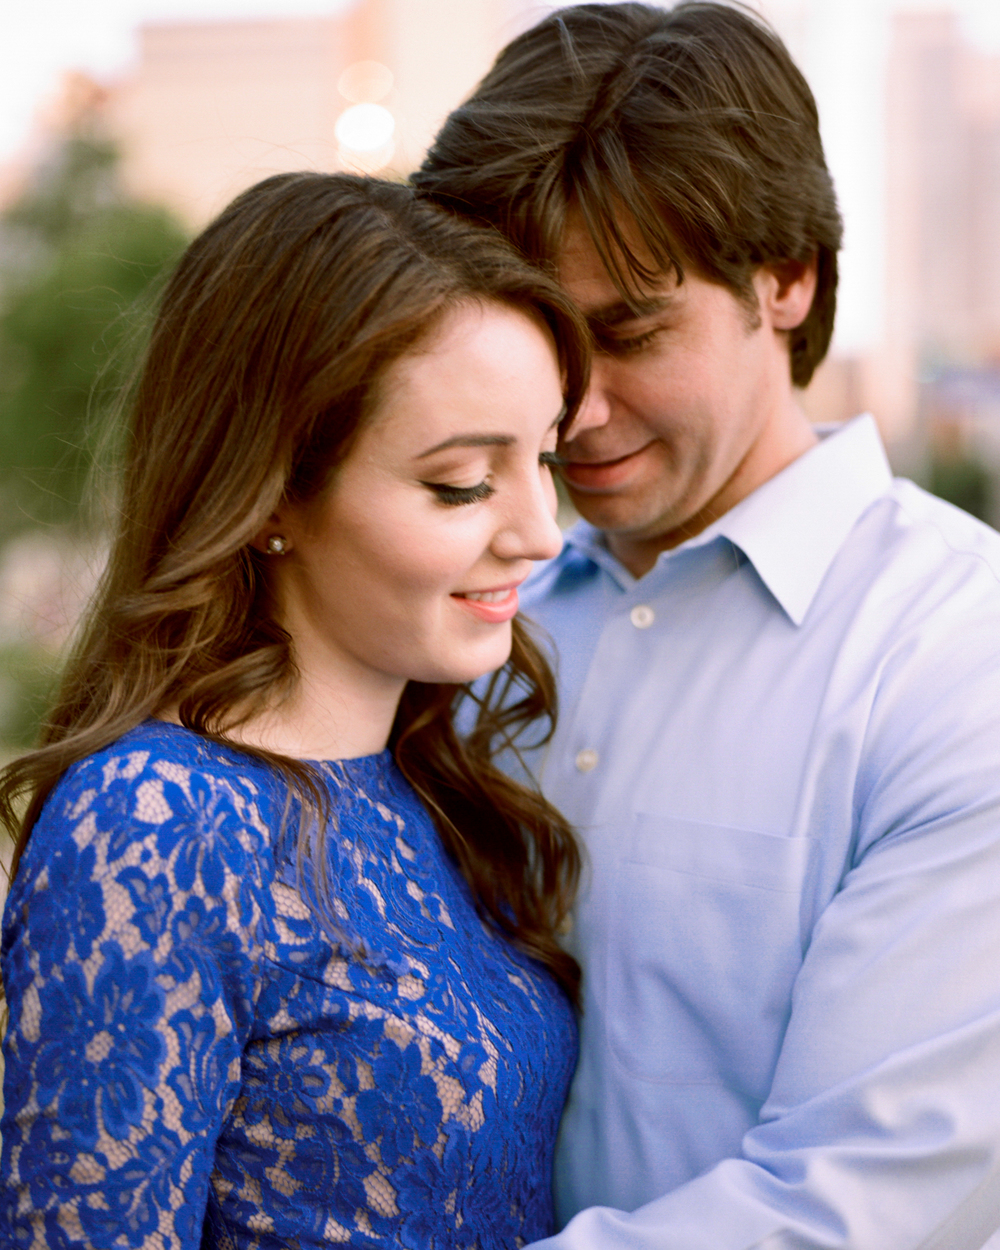 Downtown Dallas Engagement Photography by Jessica Garmon